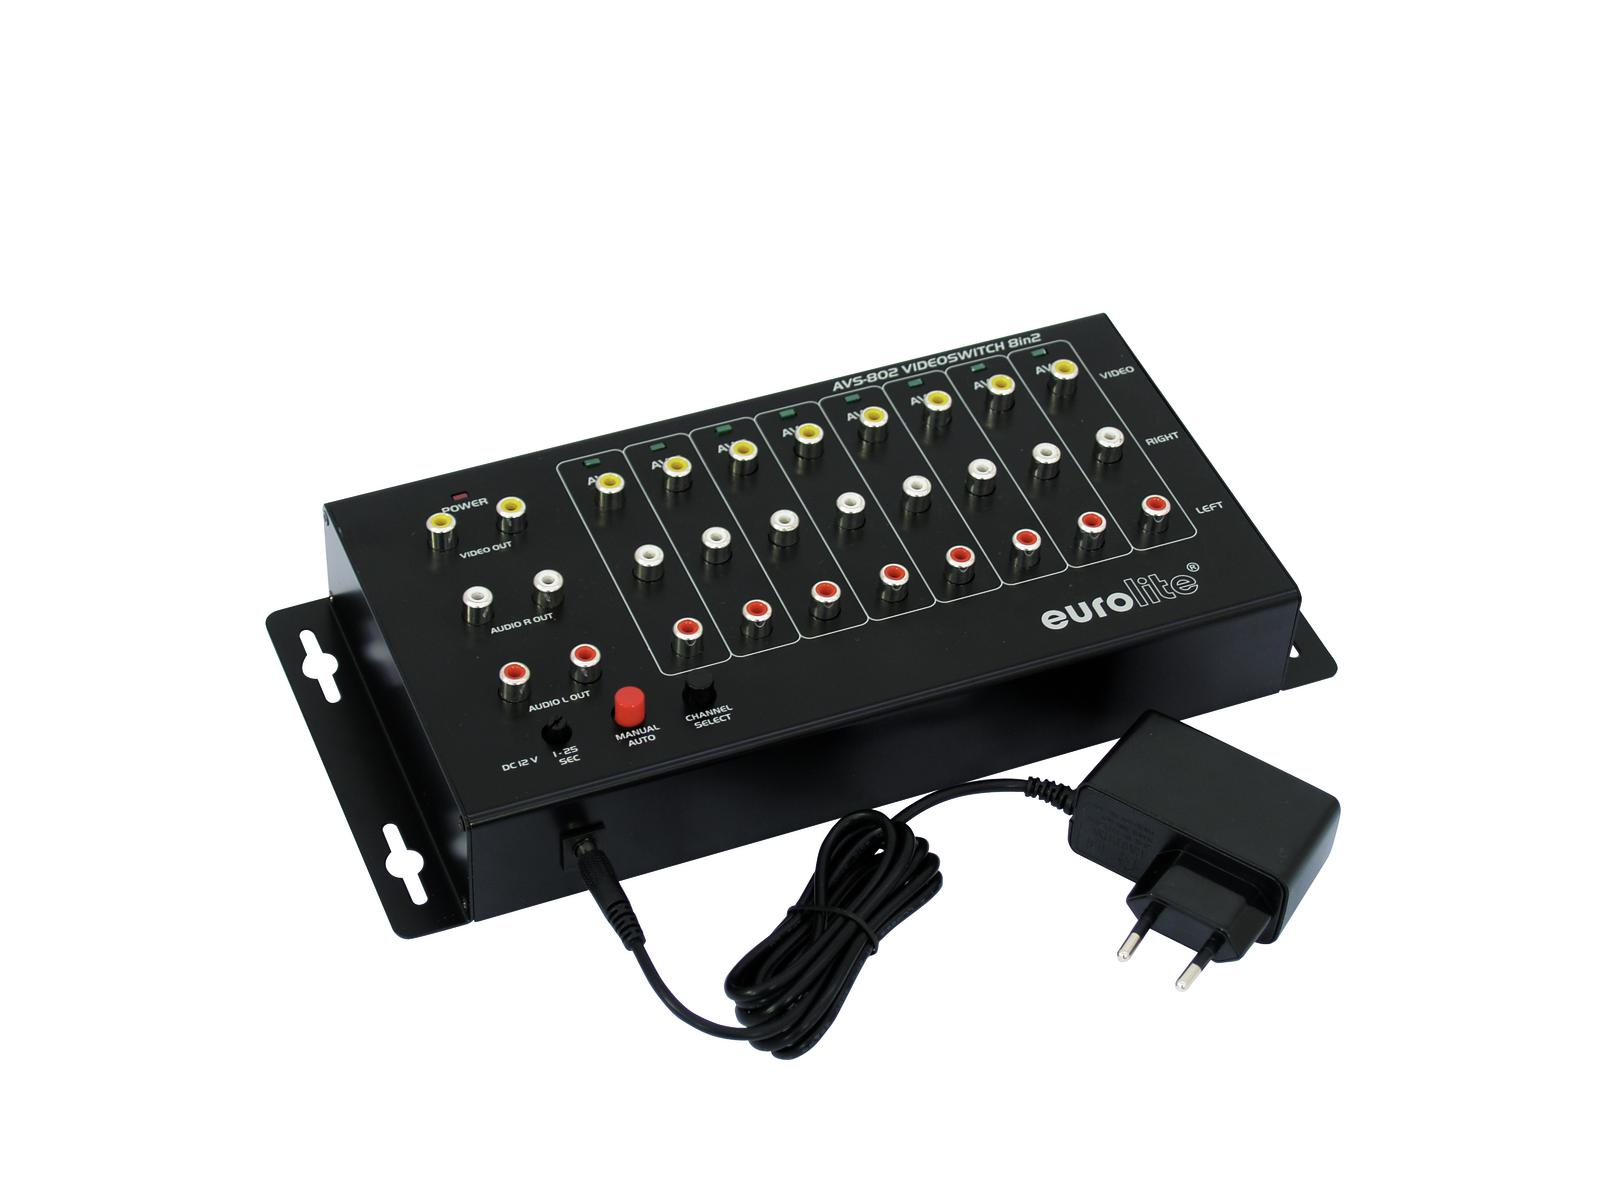 EUROLITE AVS-802 Videoswitch 8in2